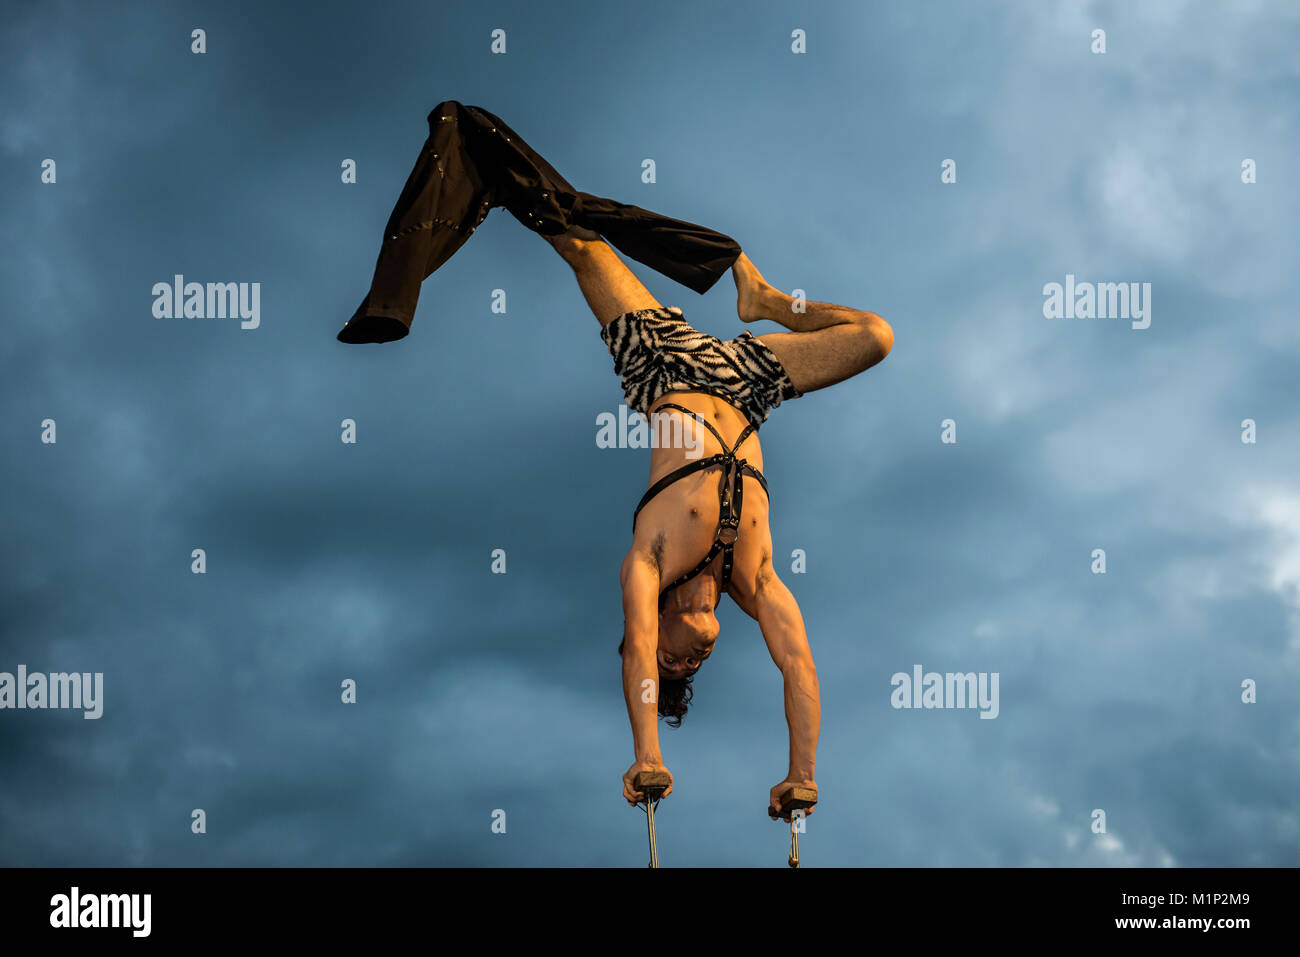 Acrobat,Kulturufer,Festival with street artists,Friedrichshafen,Lake Constance,Baden-Württemberg,Germany - Stock Image